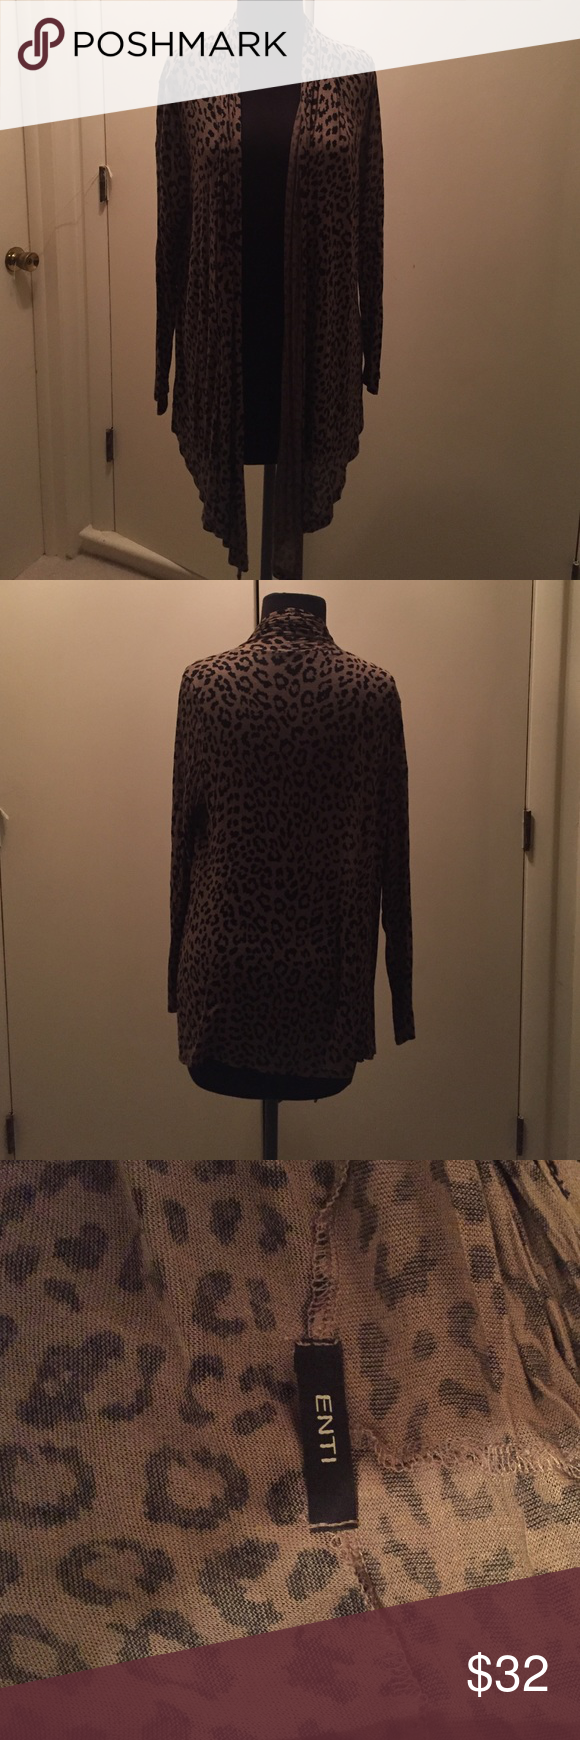 Enti Cheetah Sweater Adorable lightweight sweater. Make an offer! Enti Sweaters